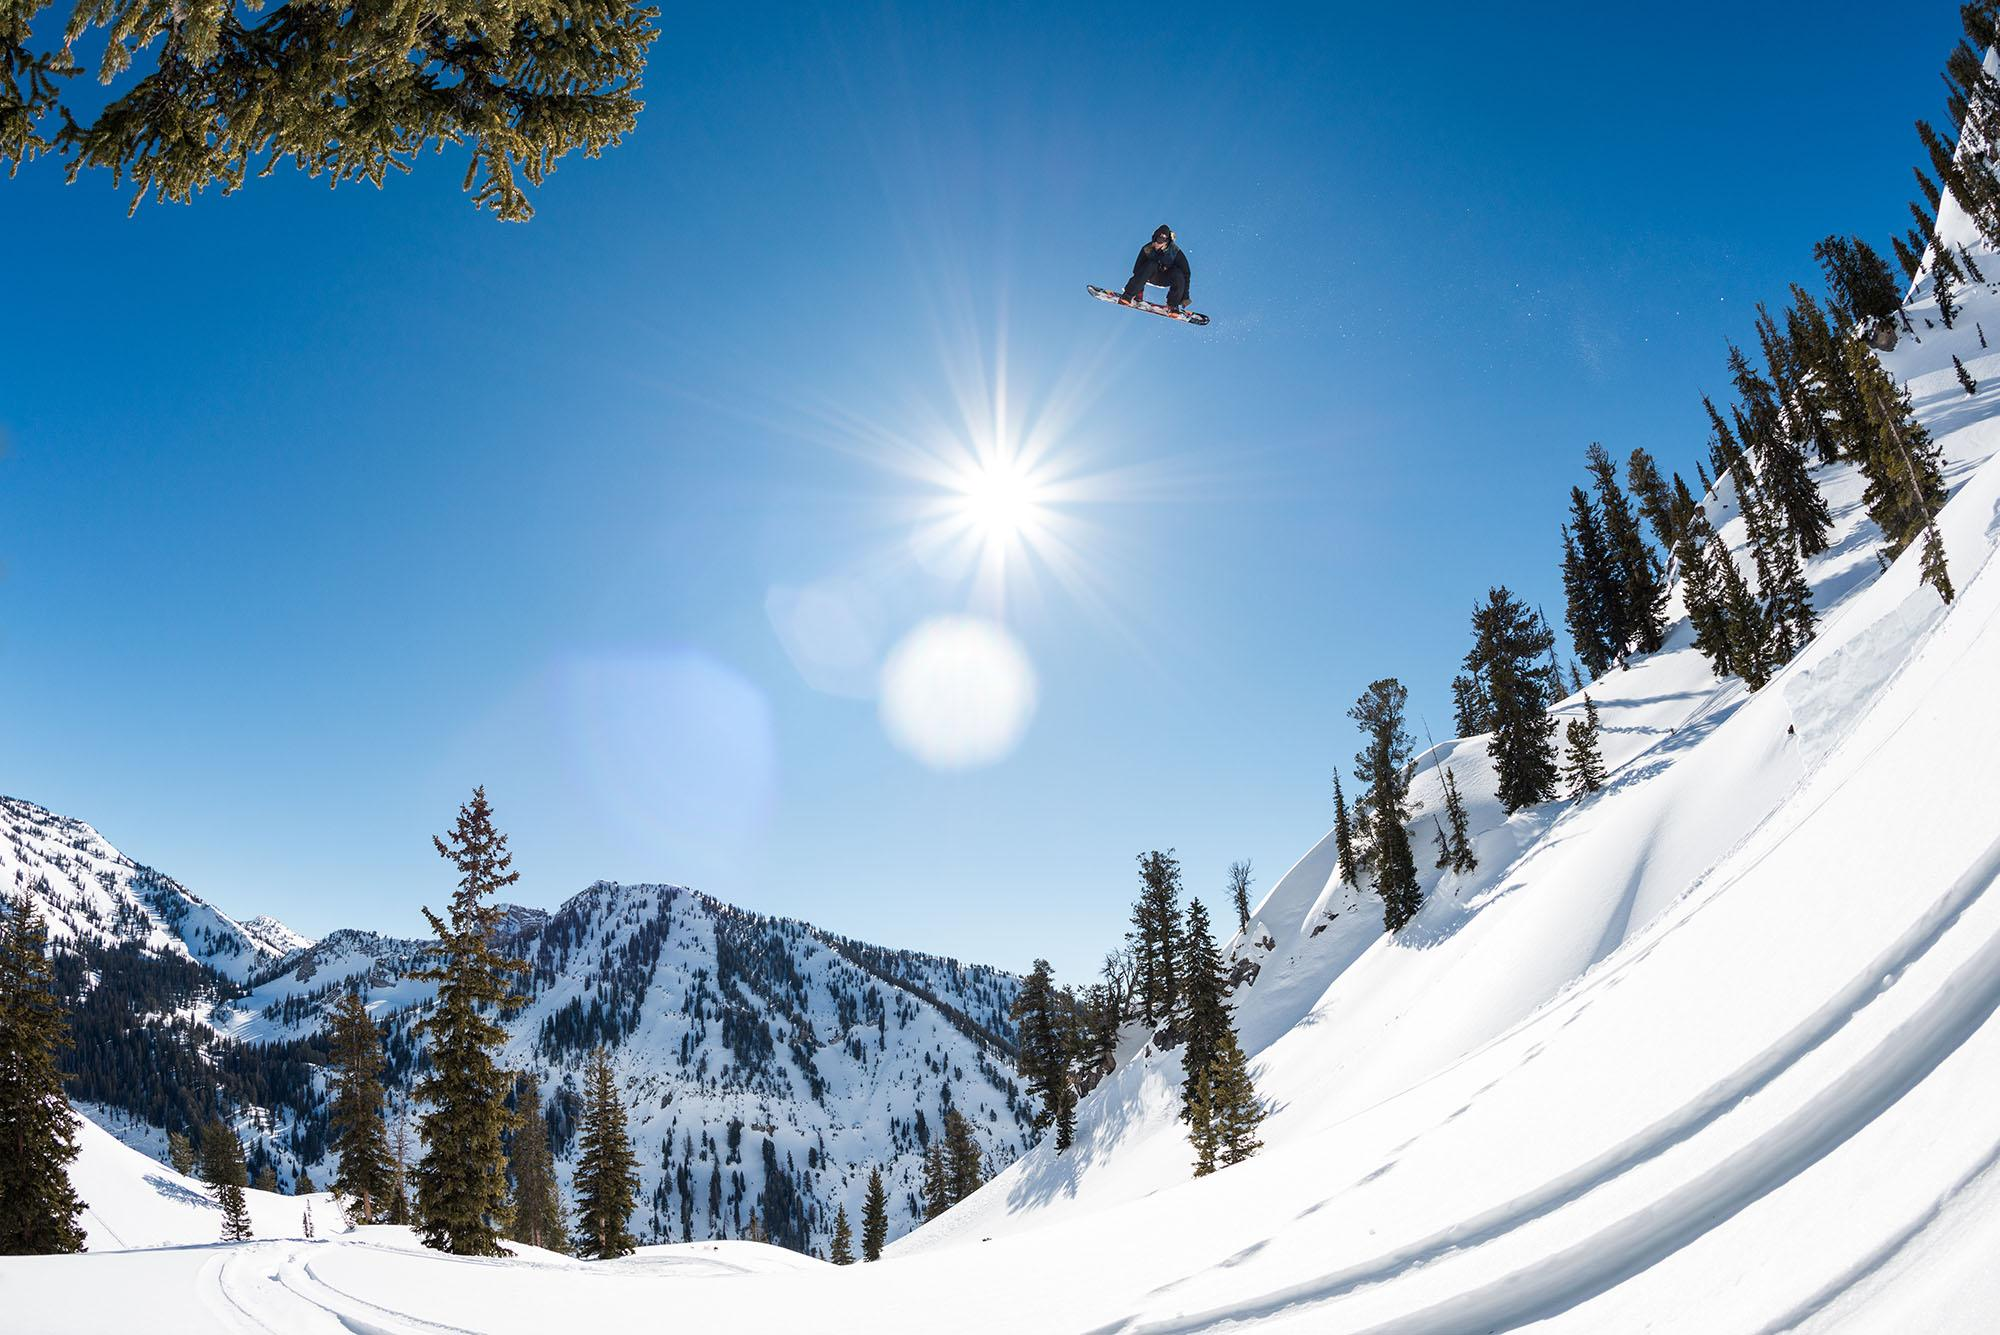 Travis Rice snowboarding in Jackson Hole, Wyoming during filming of The Fourth Phase (Tim Zimmerman/Red Bull)